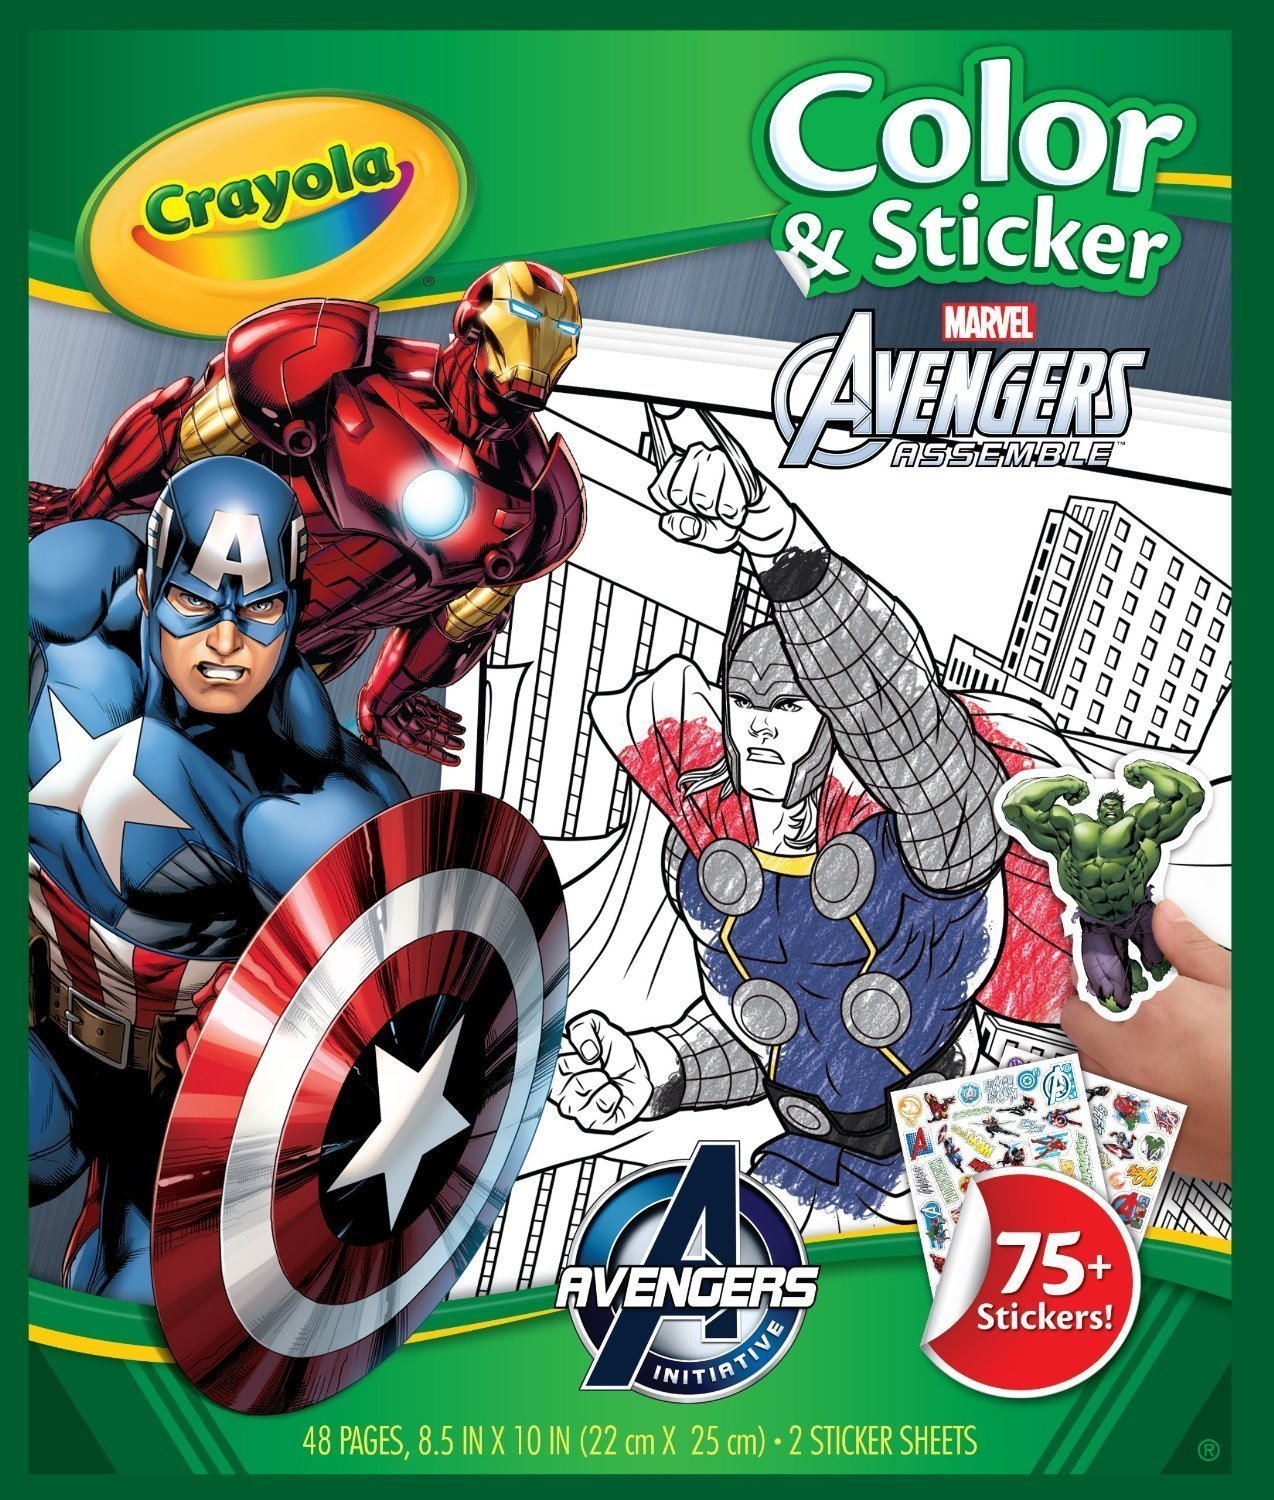 Colour & Sticker Book Avengers - Crayola image